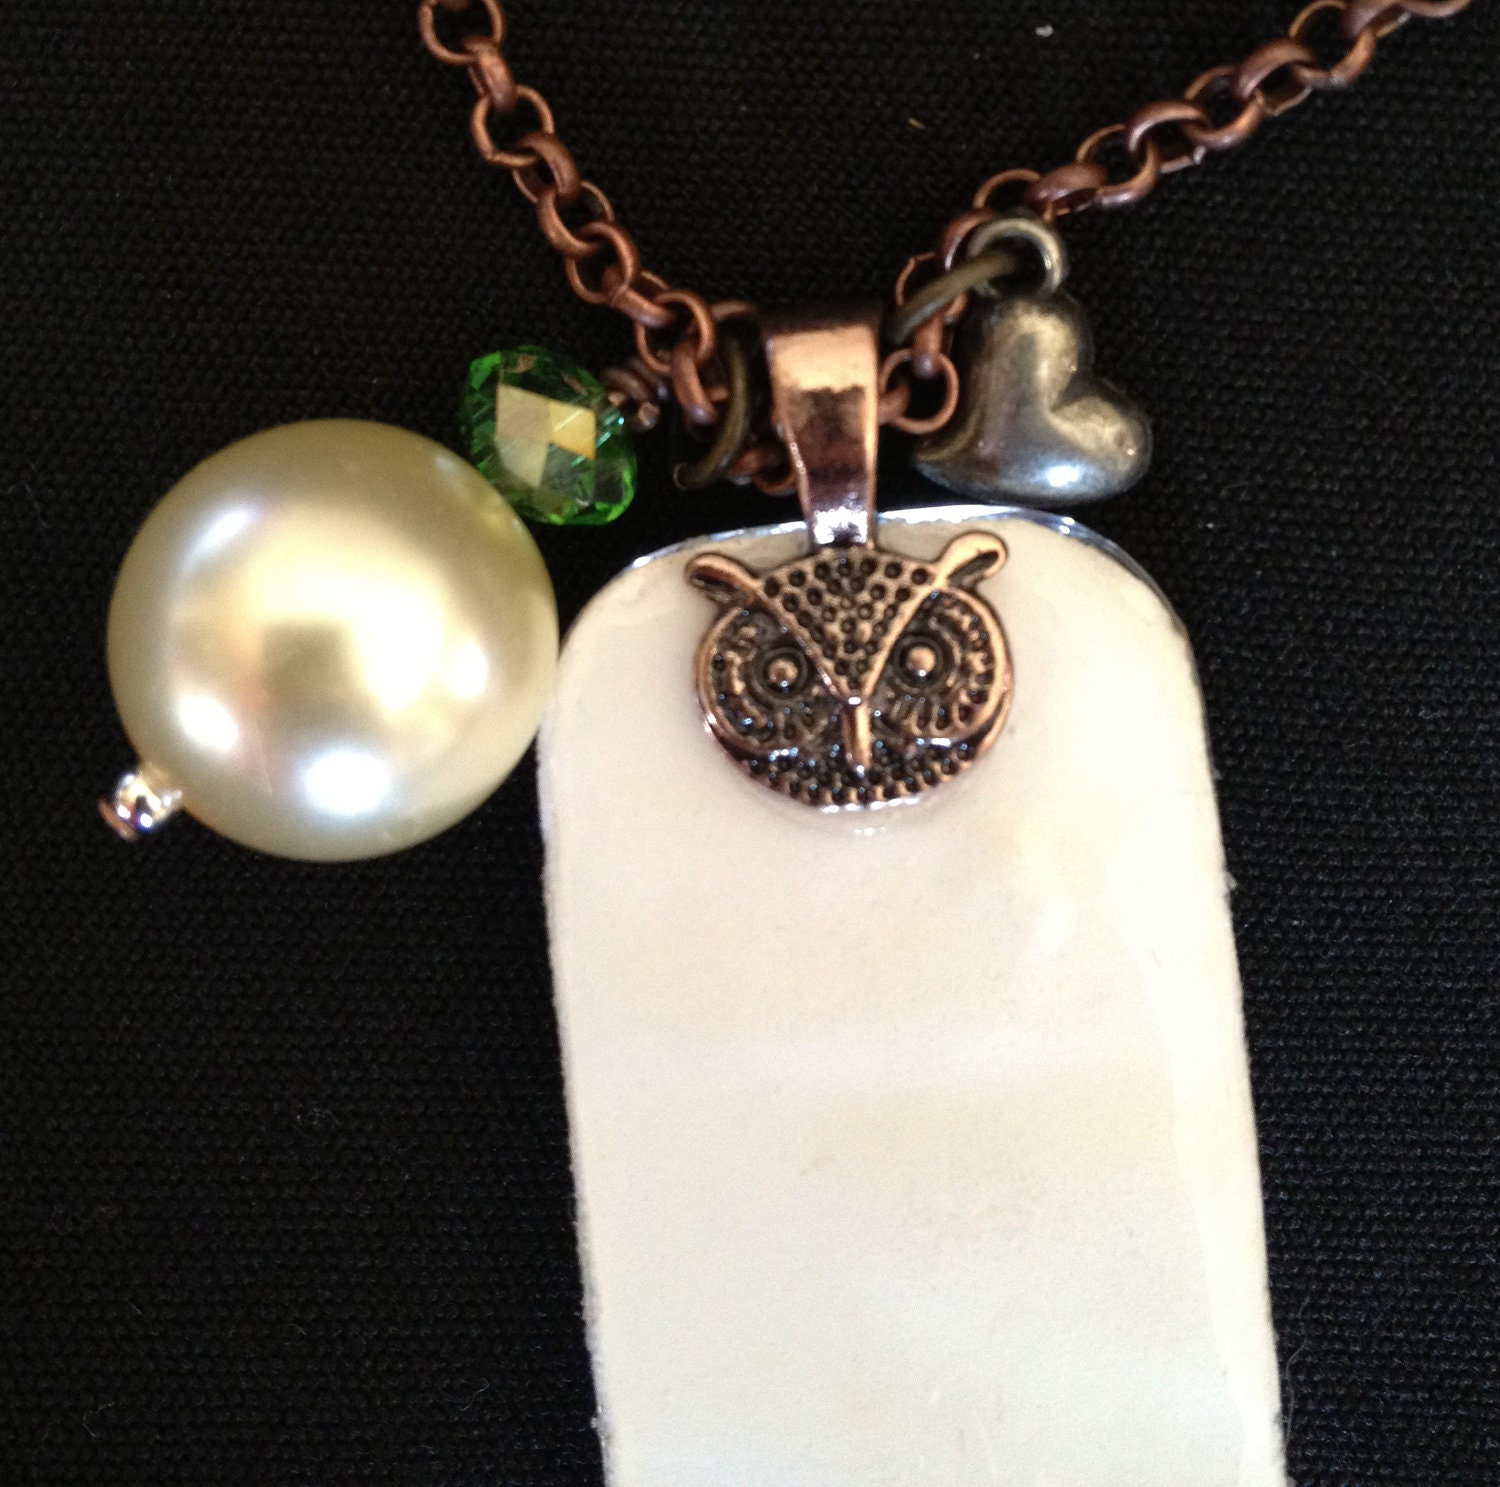 Big eared owl glass tile pendant necklace